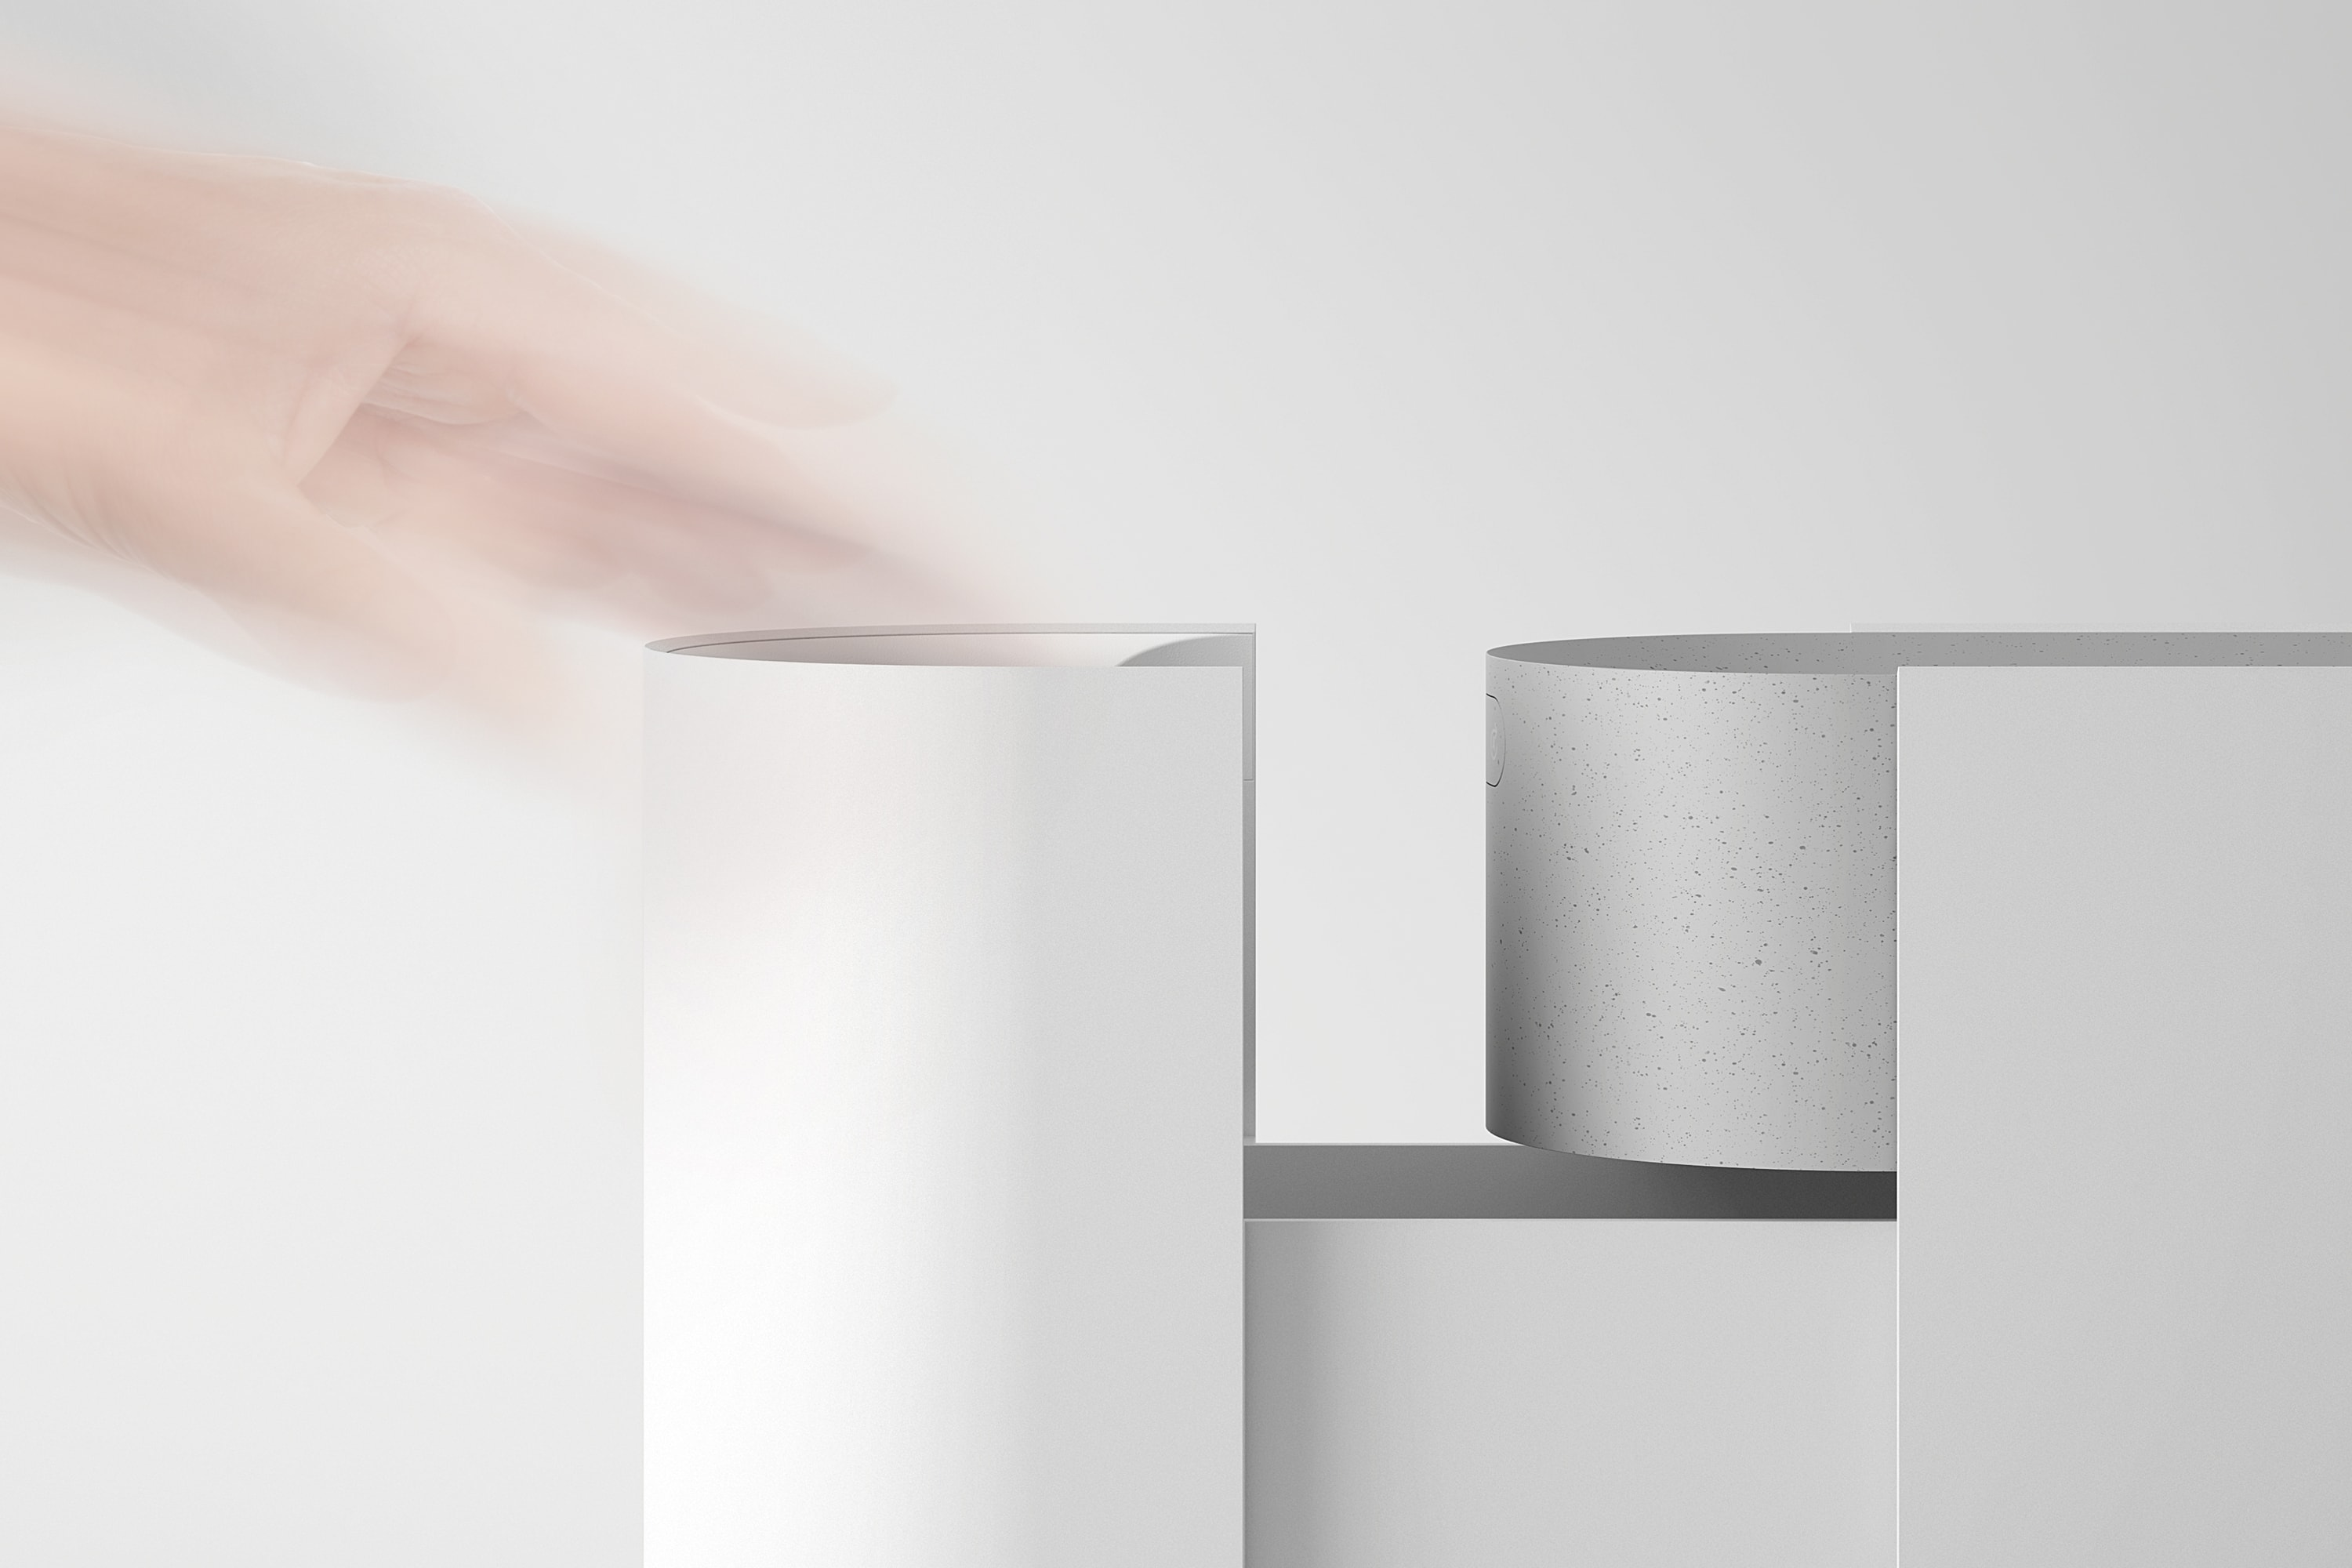 Blond-Industrial-Product-Design-Agency-Studio-London-Paper-Shredder-11